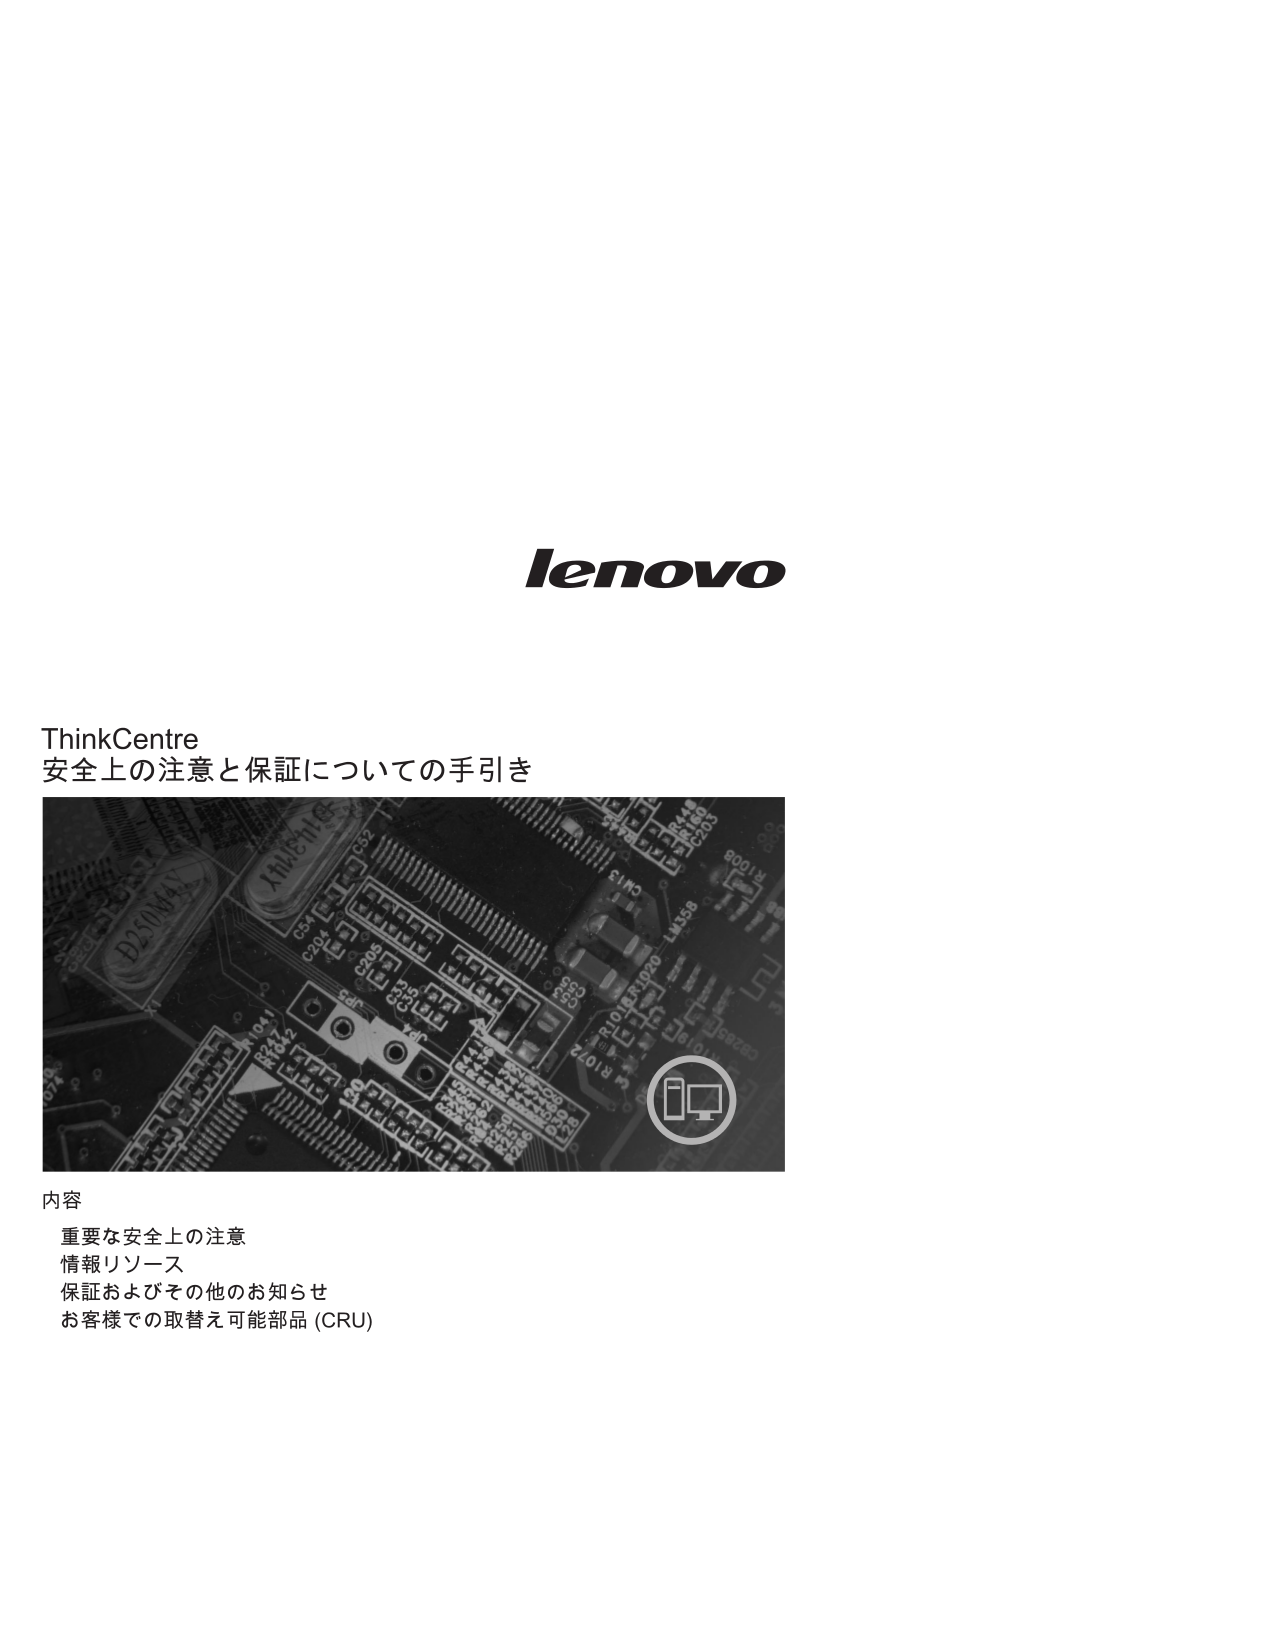 pdf for Lenovo Desktop ThinkCentre A61 9156 manual